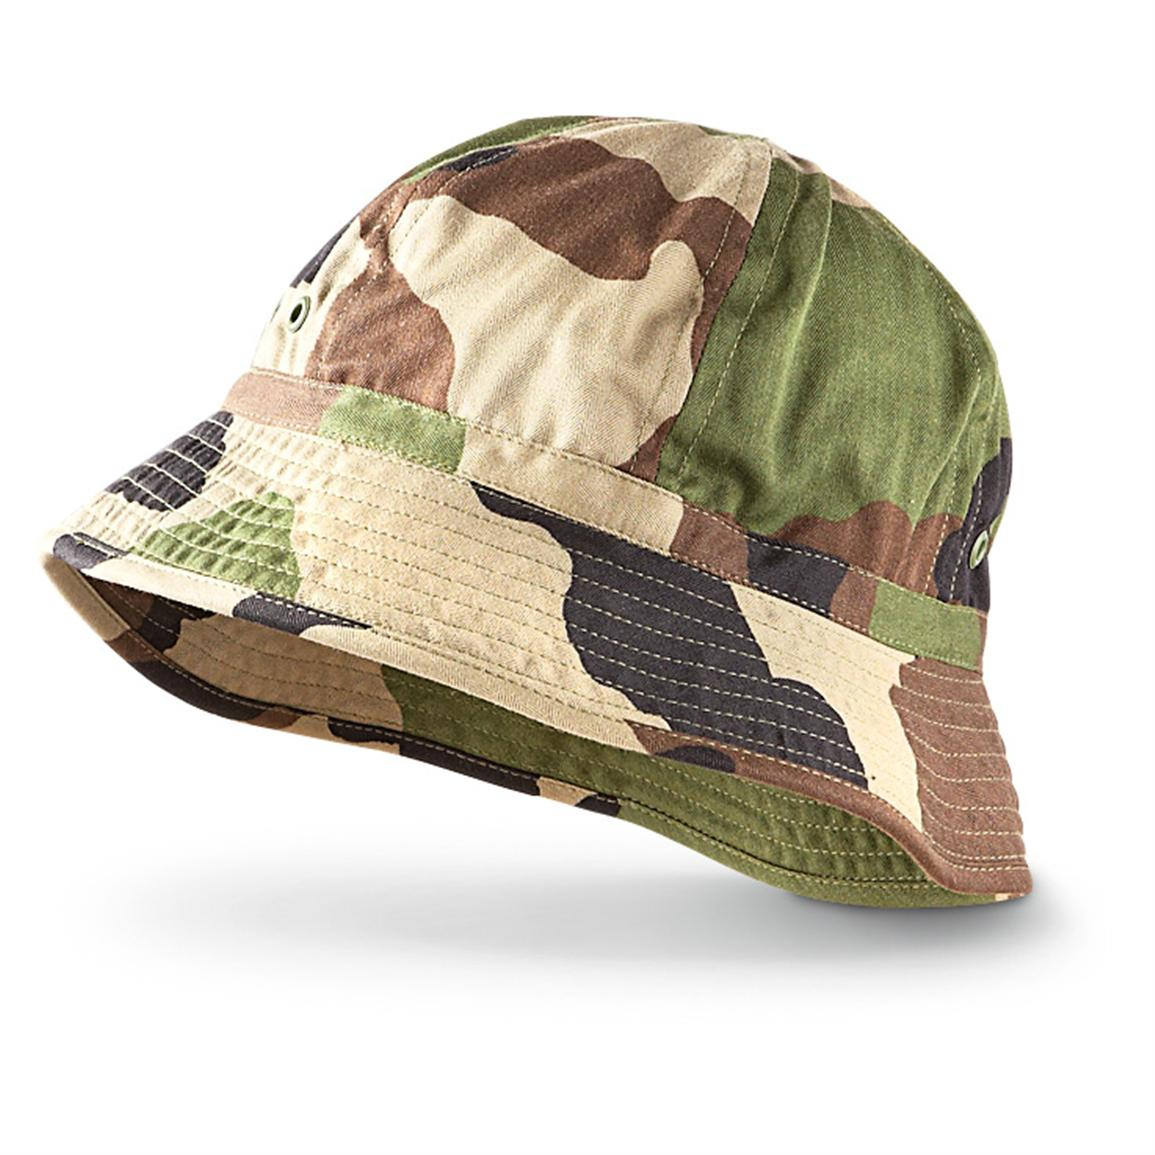 3 New French Military Boonie Hats, Woodland